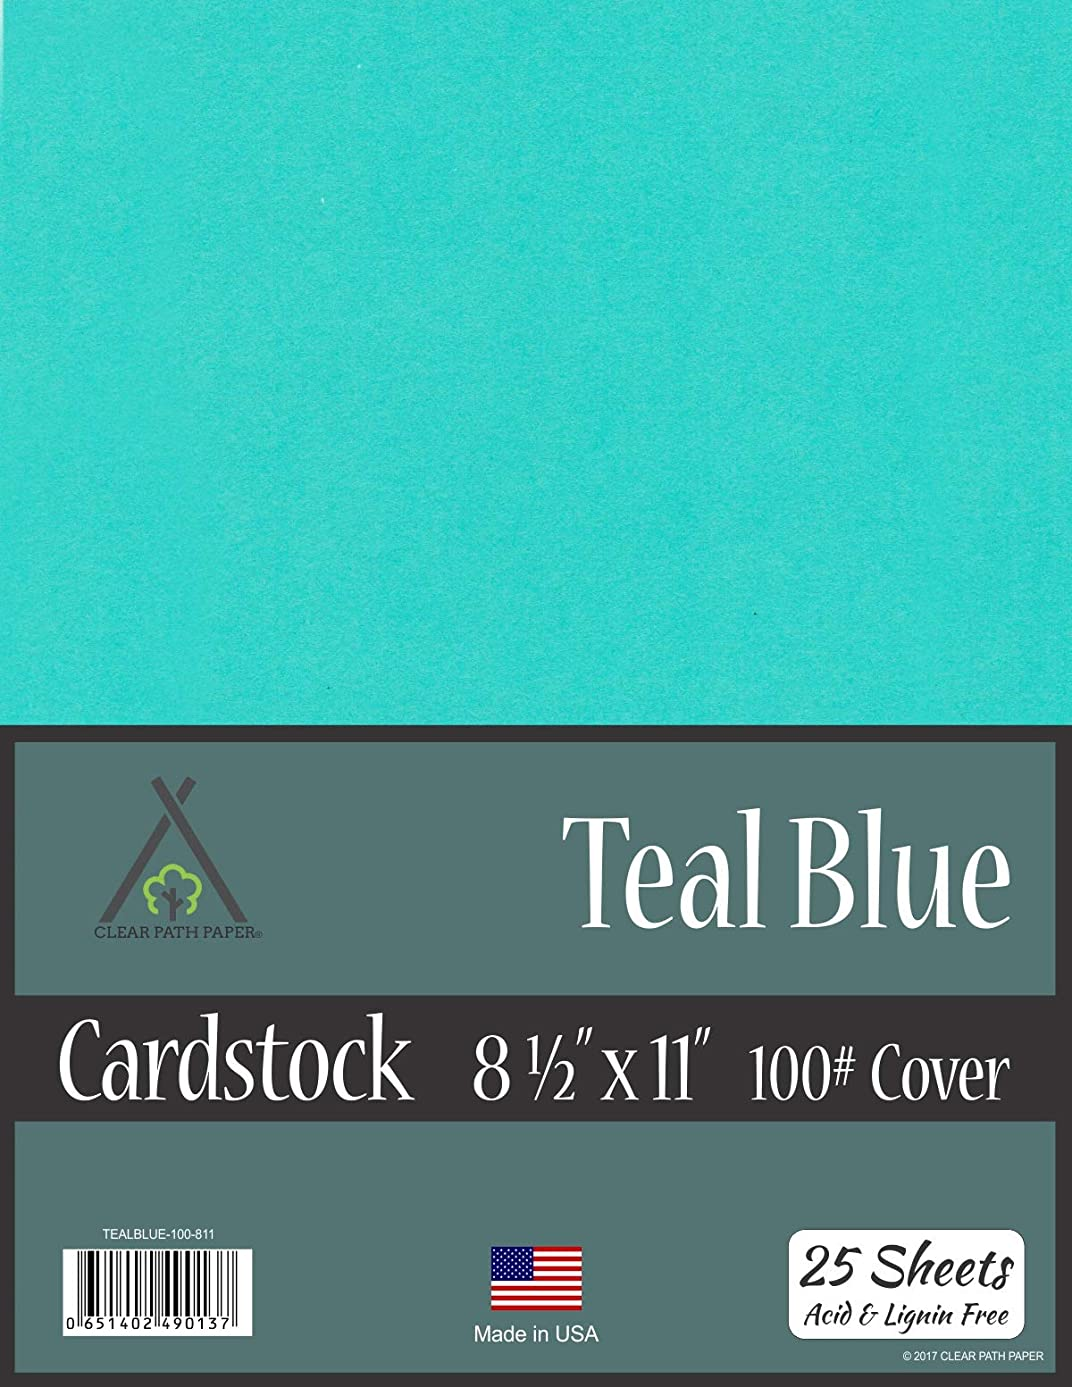 Teal Blue Cardstock - 8.5 x 11 inch - 100Lb Cover - 25 Sheets